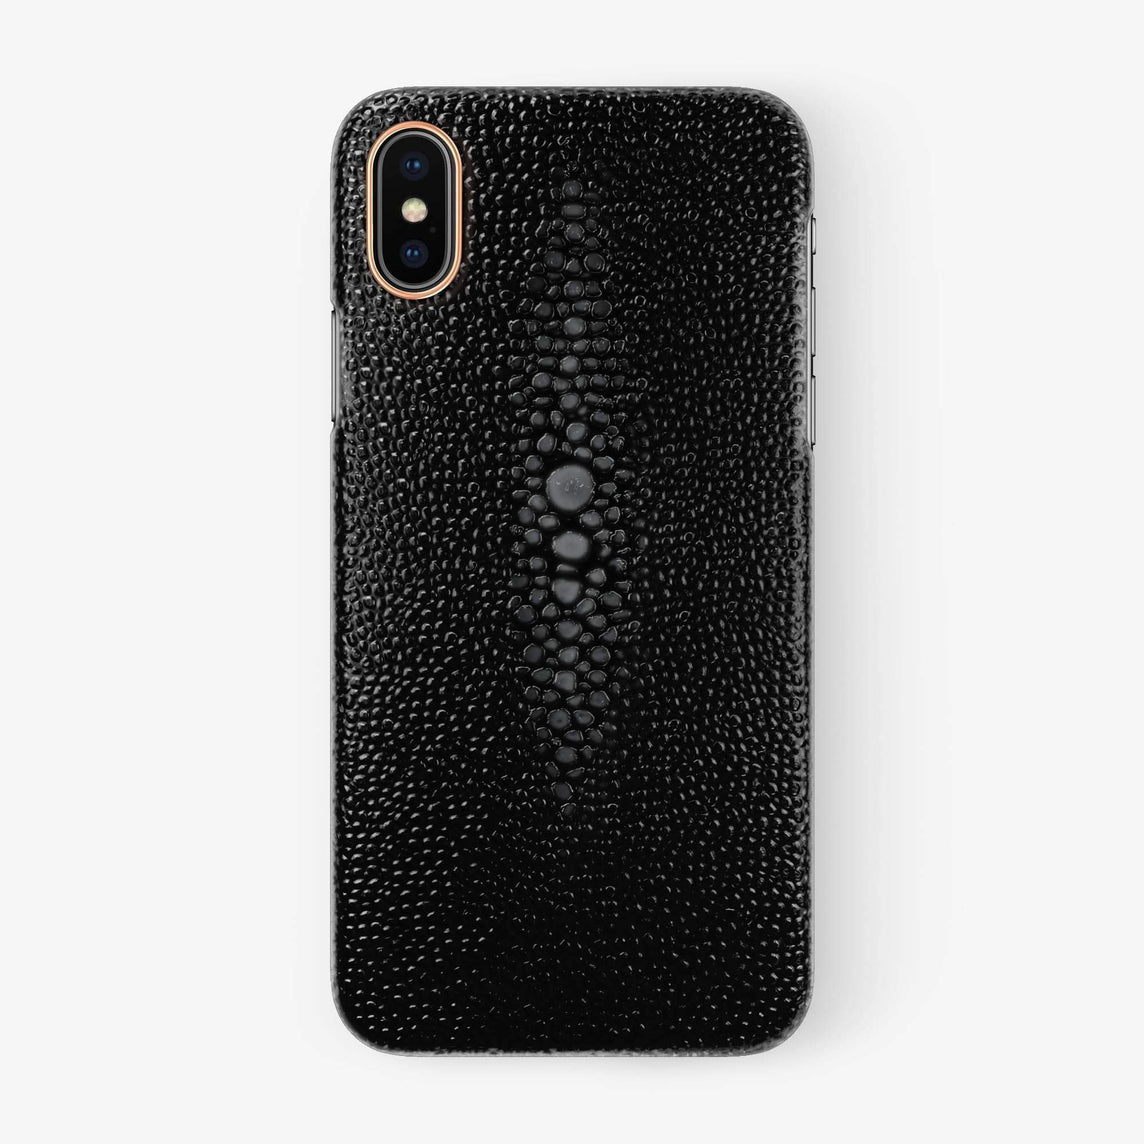 Black Stingray iPhone Case for iPhone XS Max finishing rose gold - Hadoro Luxury Cases